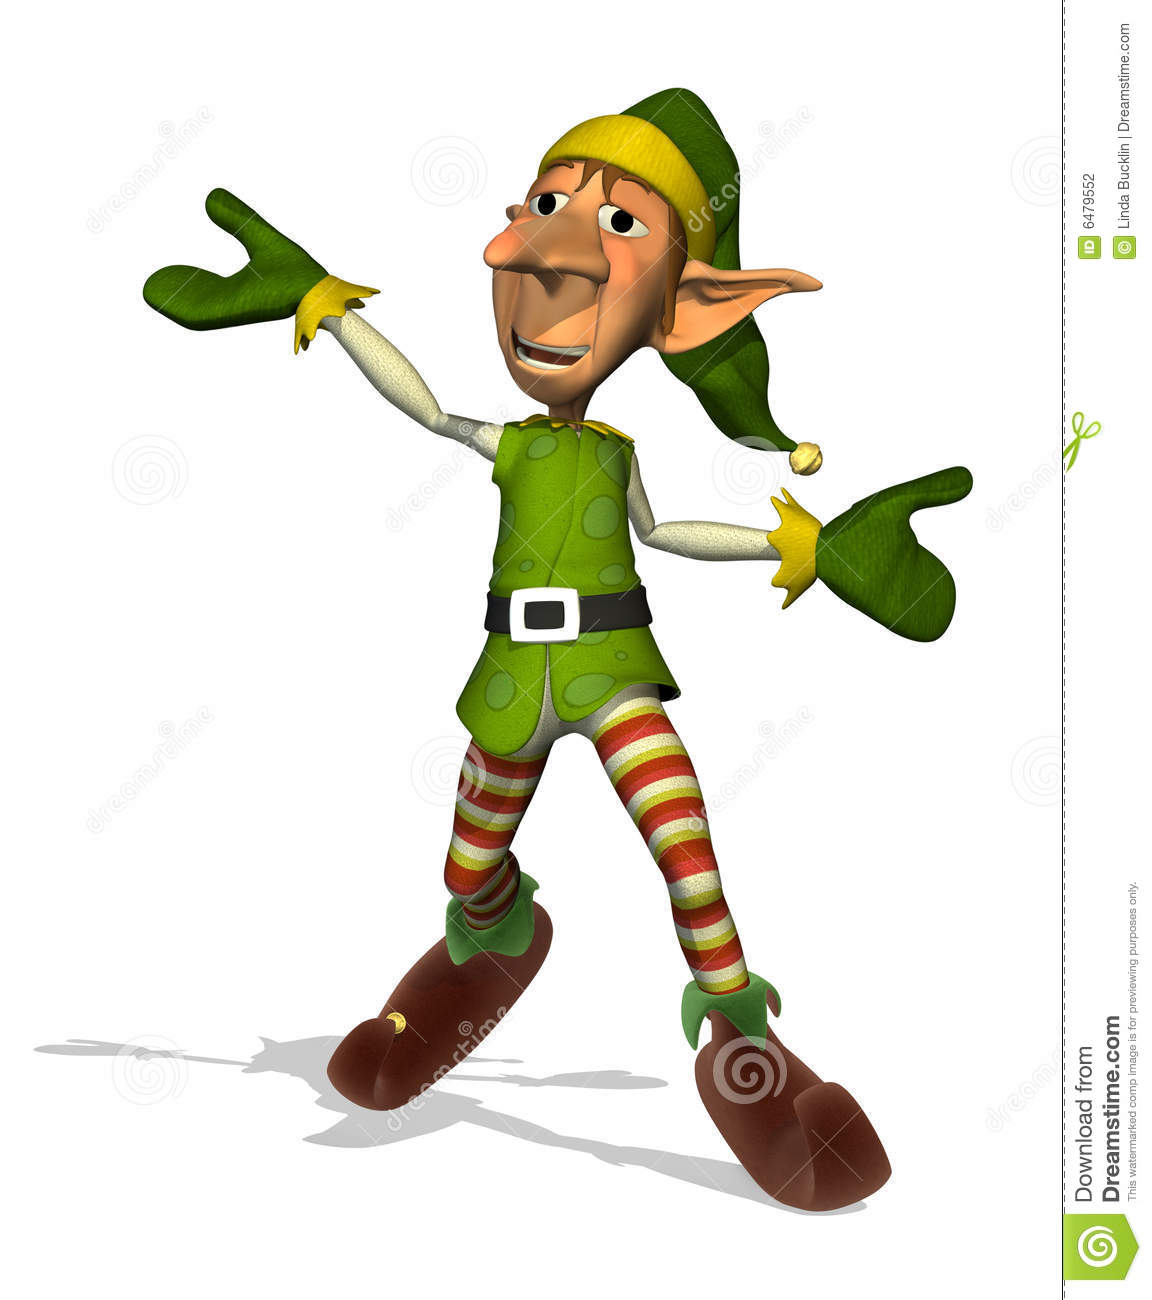 for christmas elves dancing displaying 20 images for christmas elves ...